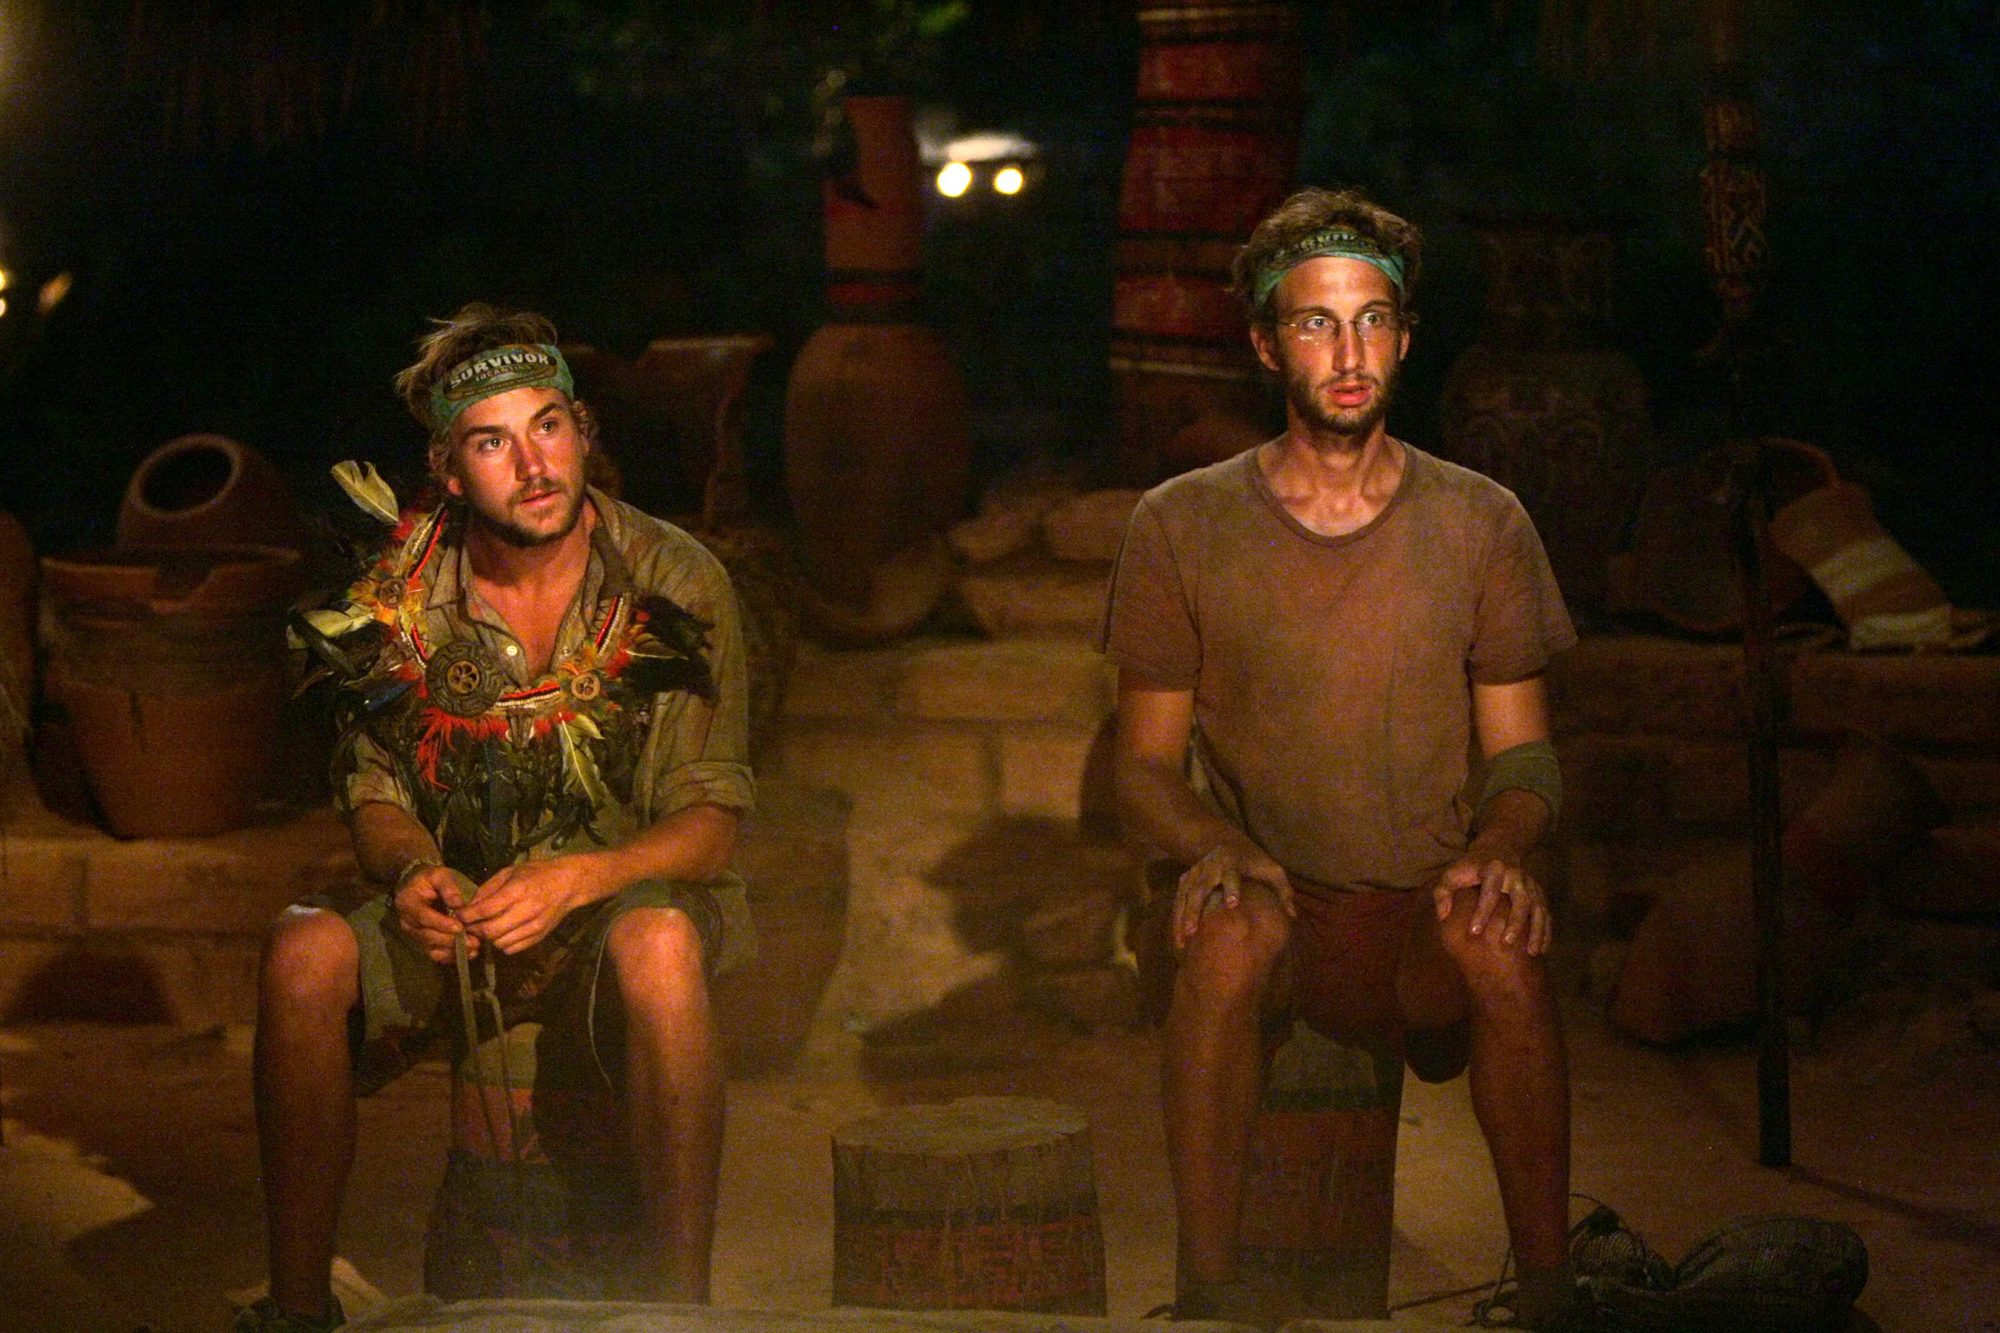 Survivor: Tocantins - The Brazilian Highlands